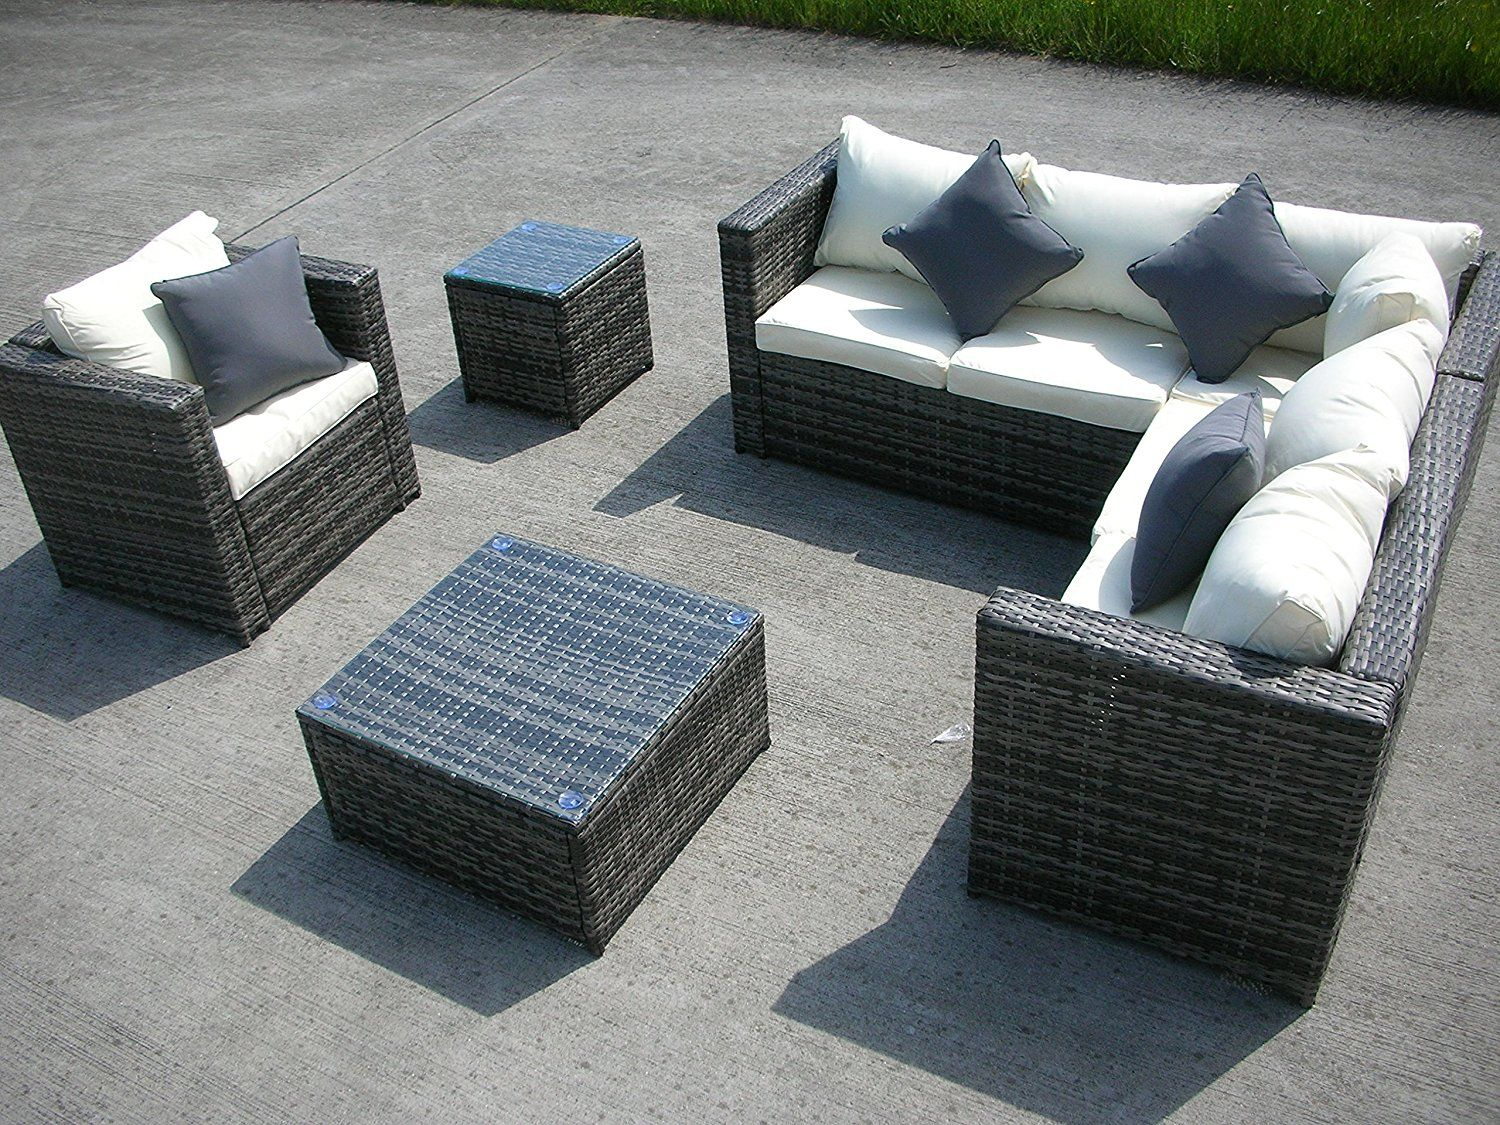 New Grey Rattan Wicker Conservatory Outdoor Garden Furniture Set